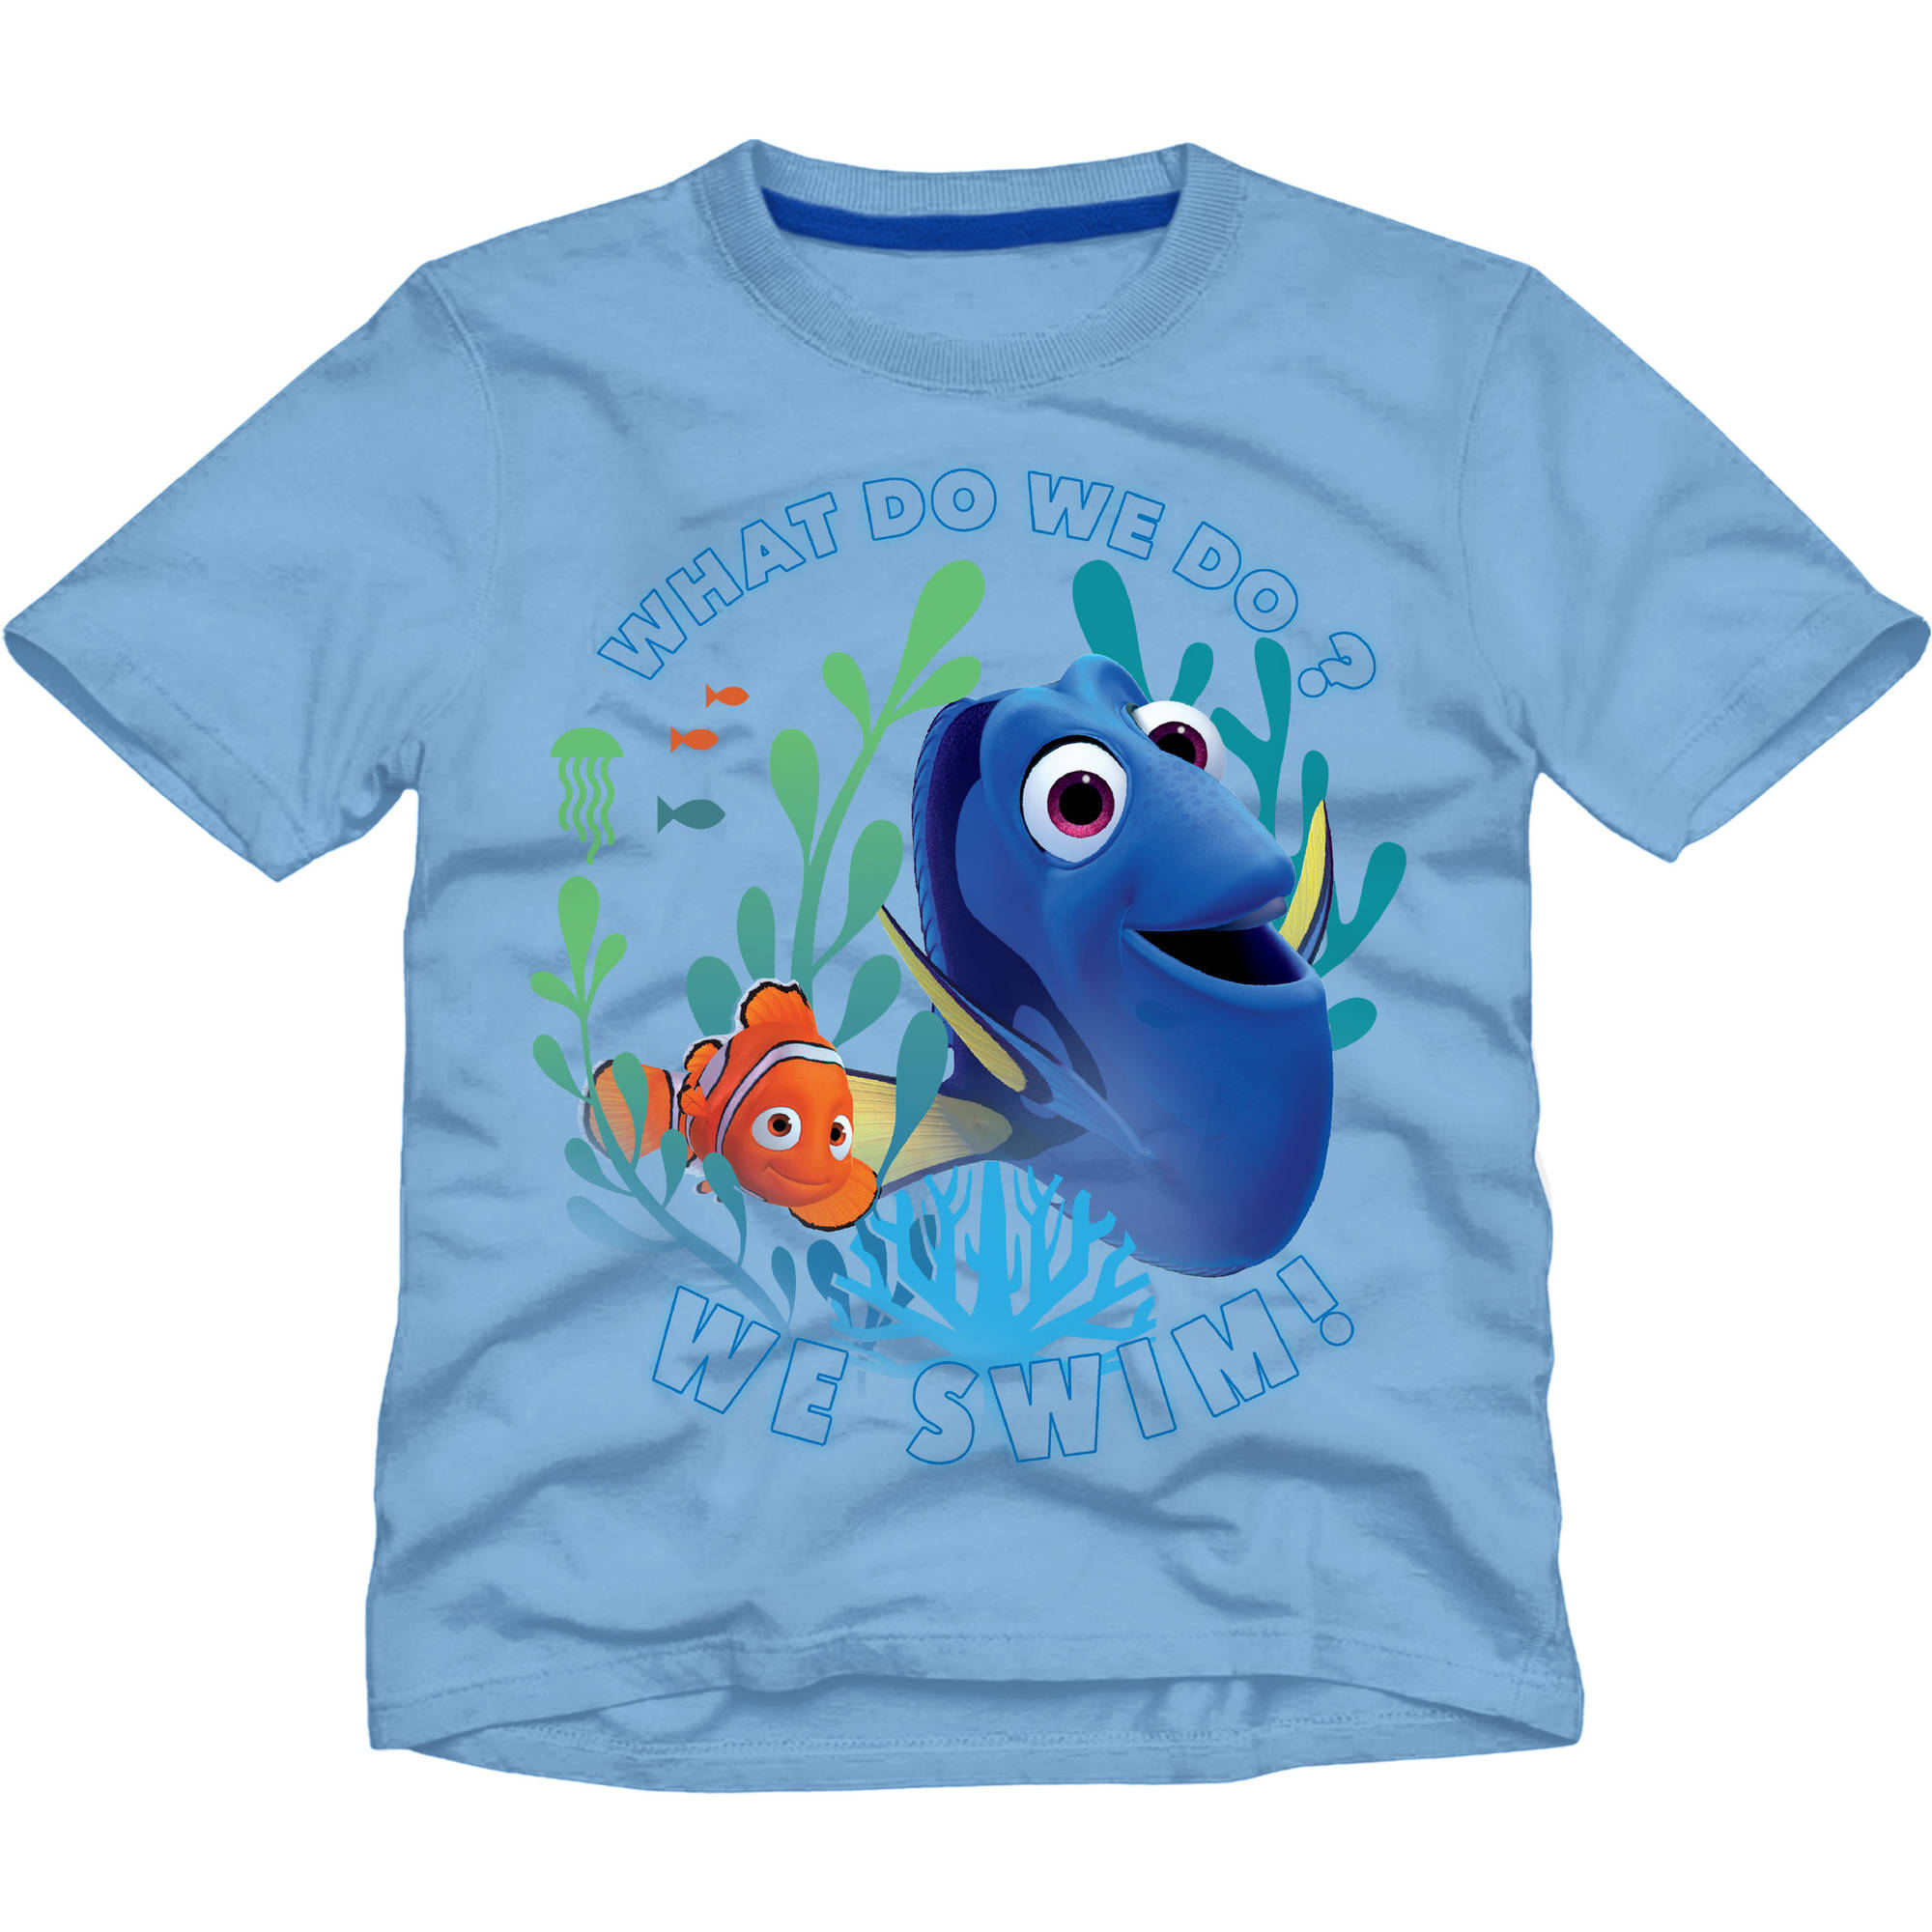 Finding Nemo Toddler Boy Short Sleeve Graphic Tee